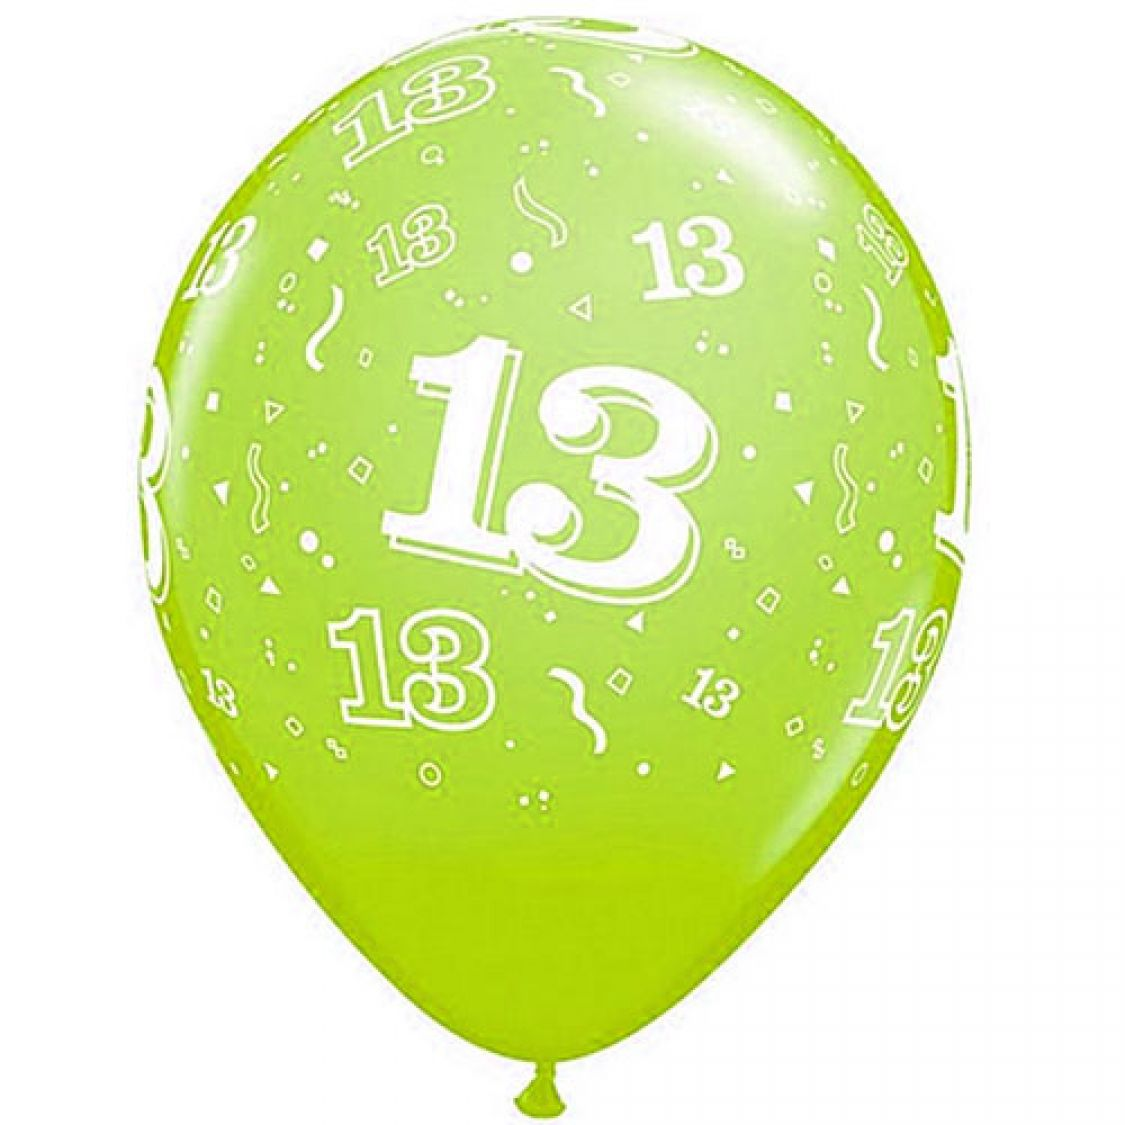 Ballon qualatex 13 ans assortiment tropical - Image ballon anniversaire ...